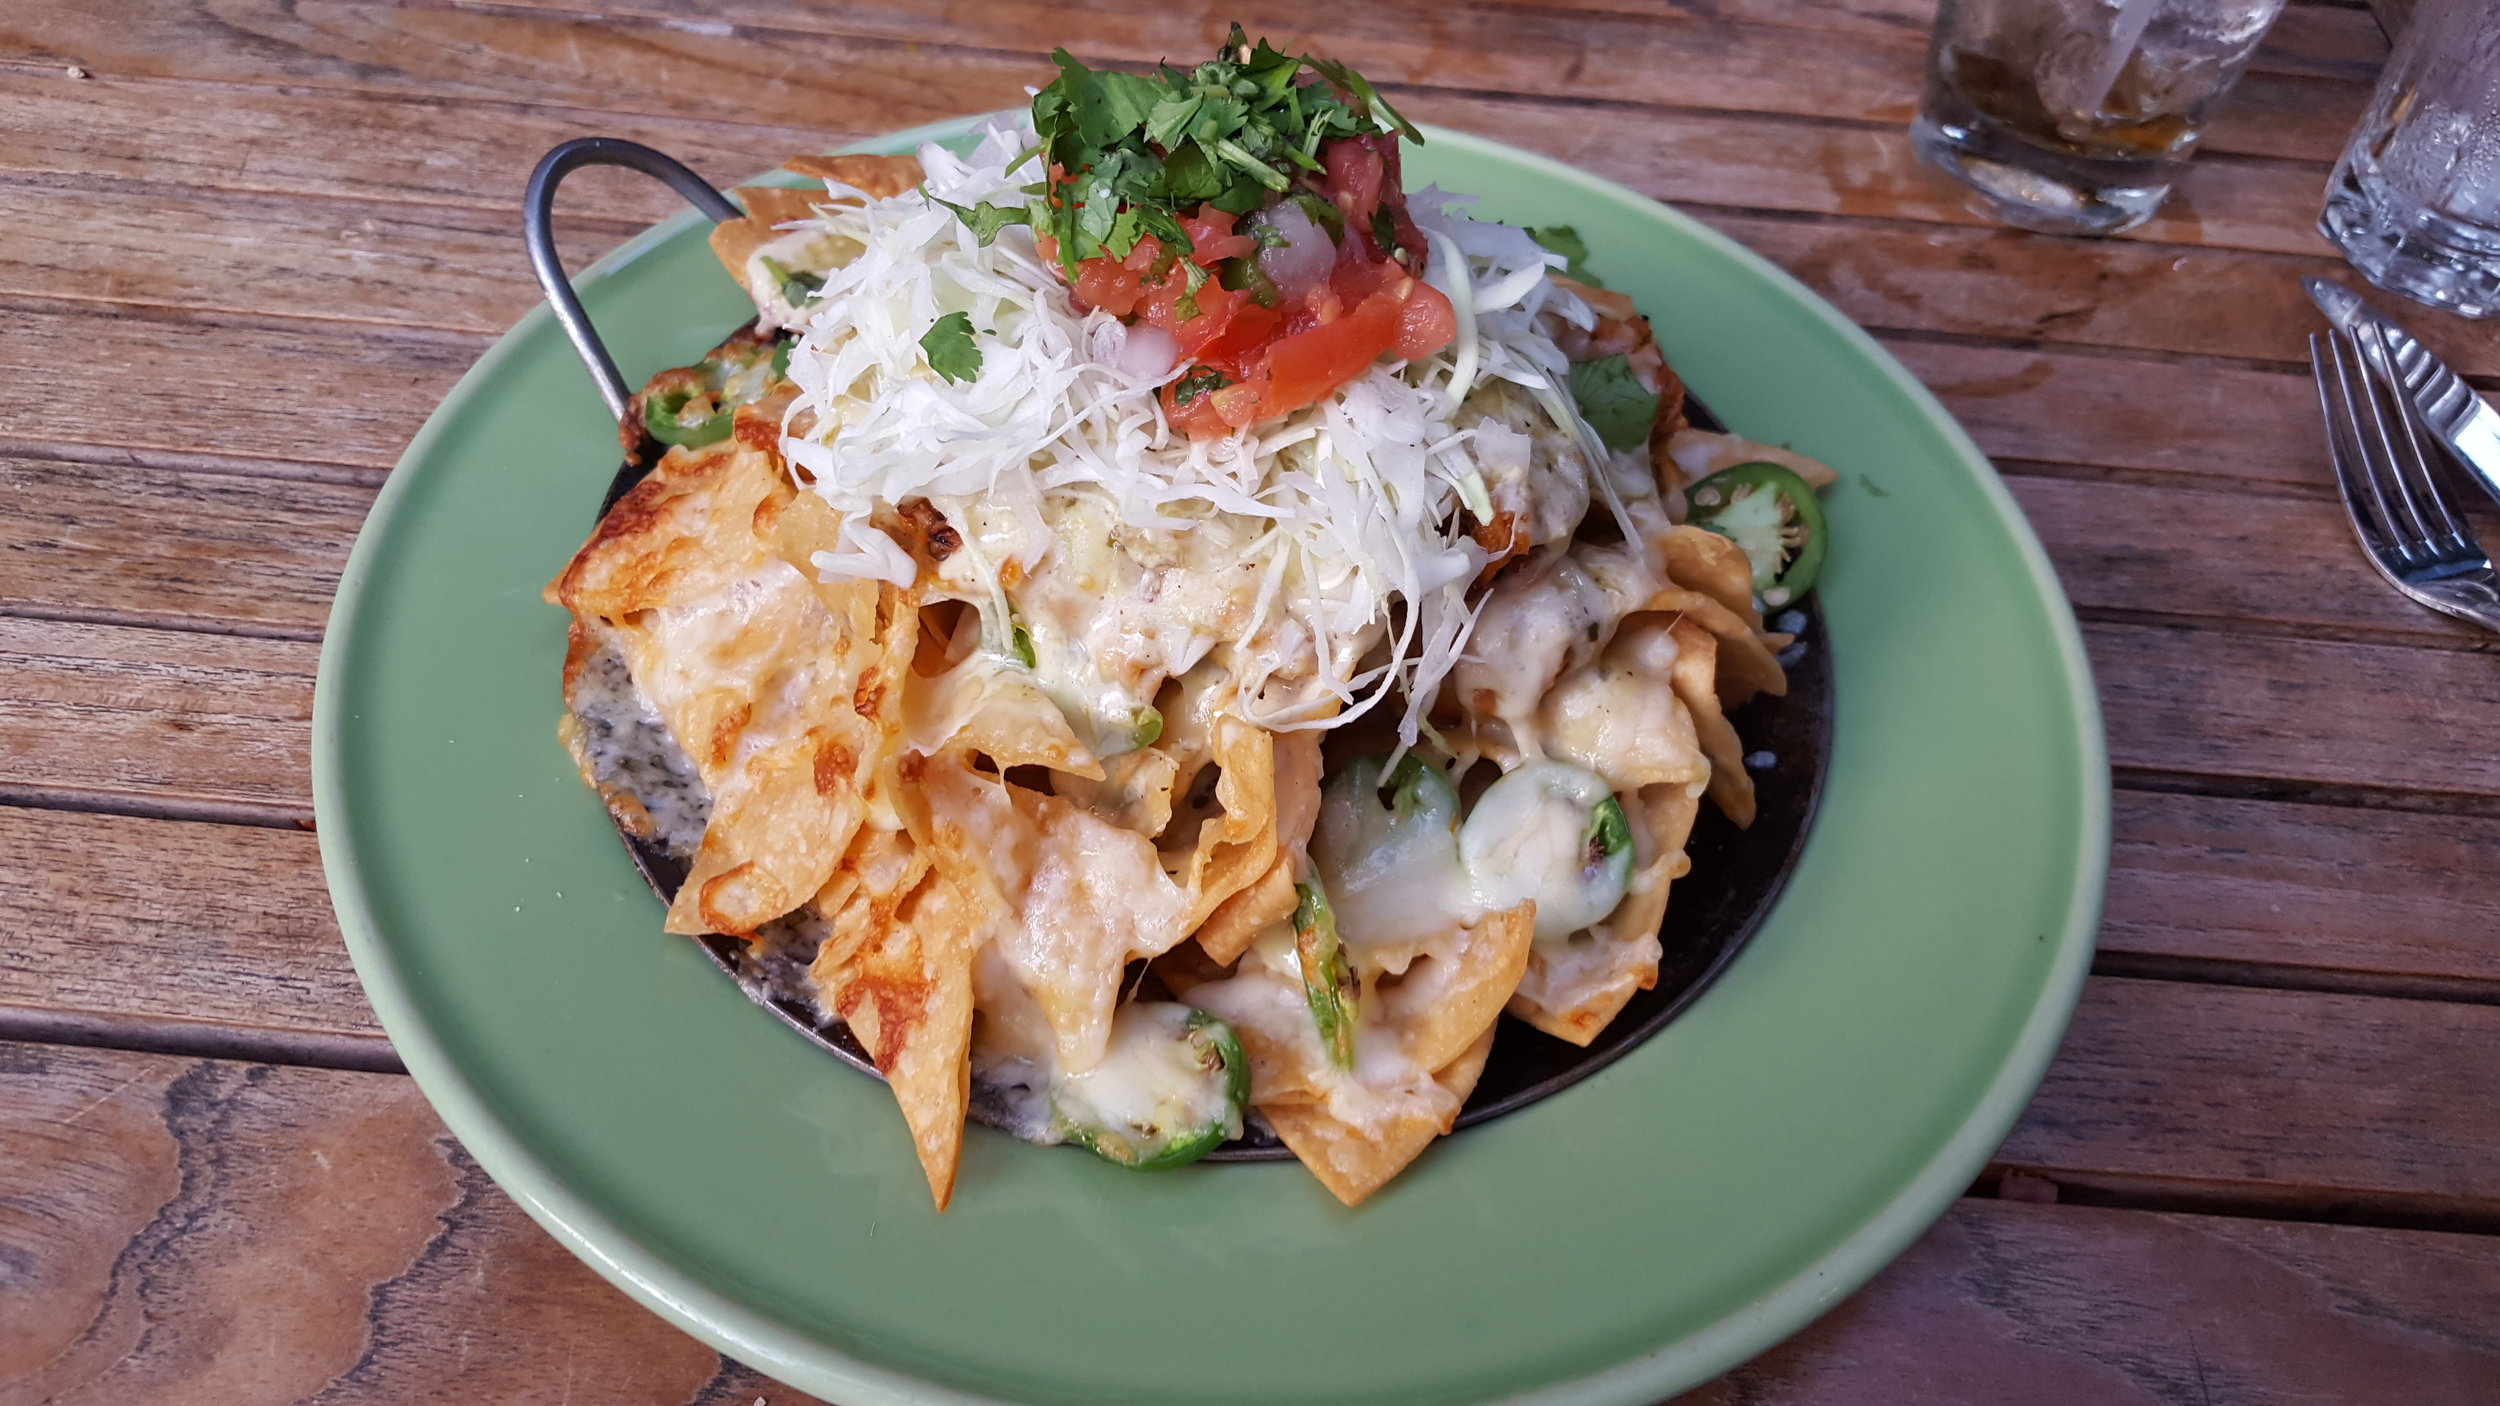 House made tortilla chips, chipotle cheese sauce, salsa verde, roasted chicken, sliced jalapeño, fresh pico-de-gallo